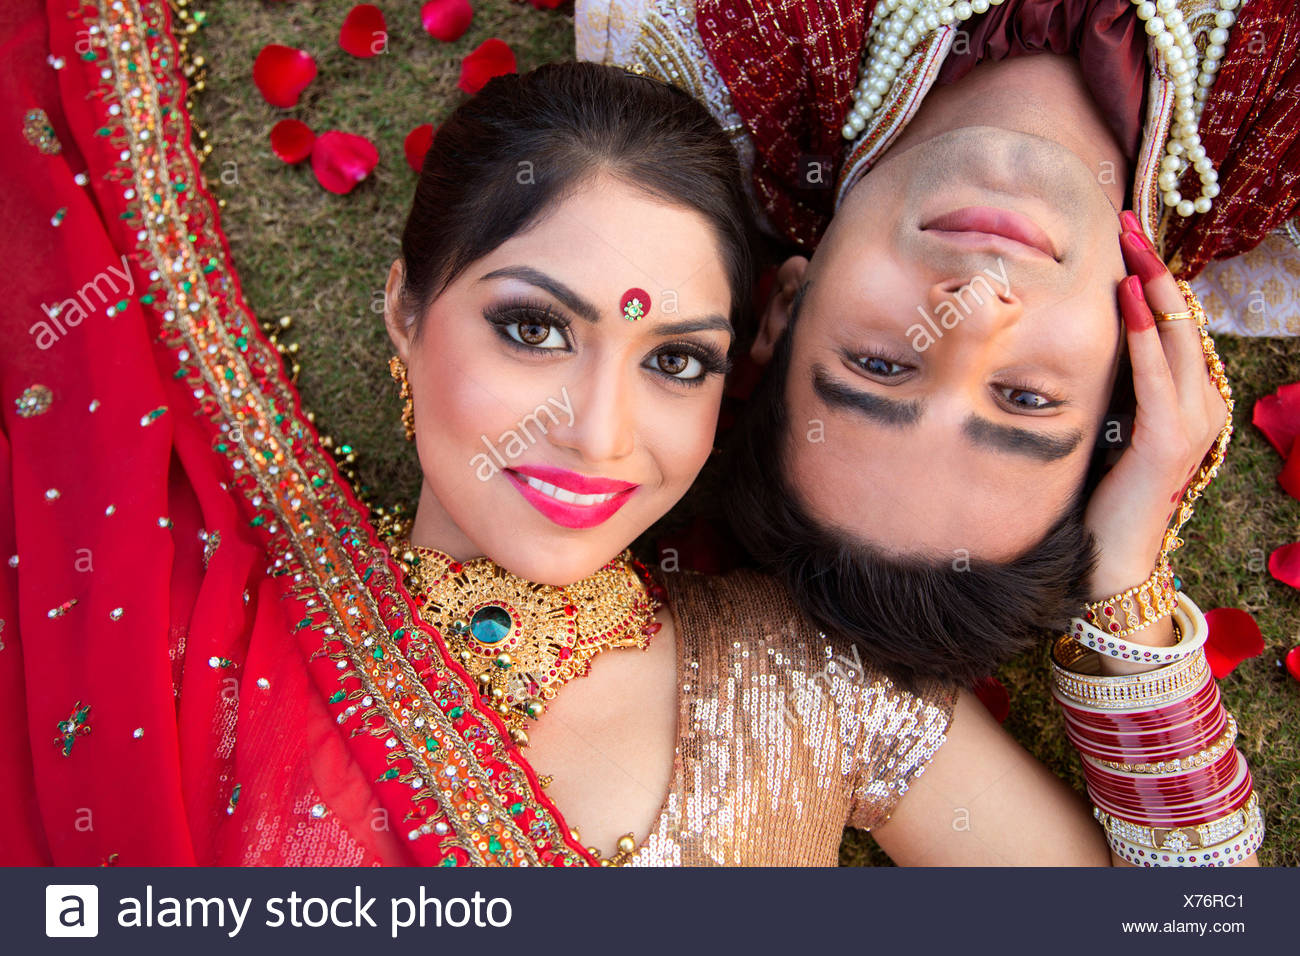 Indian bride and groom in traditional wedding dress and posing Stock ...